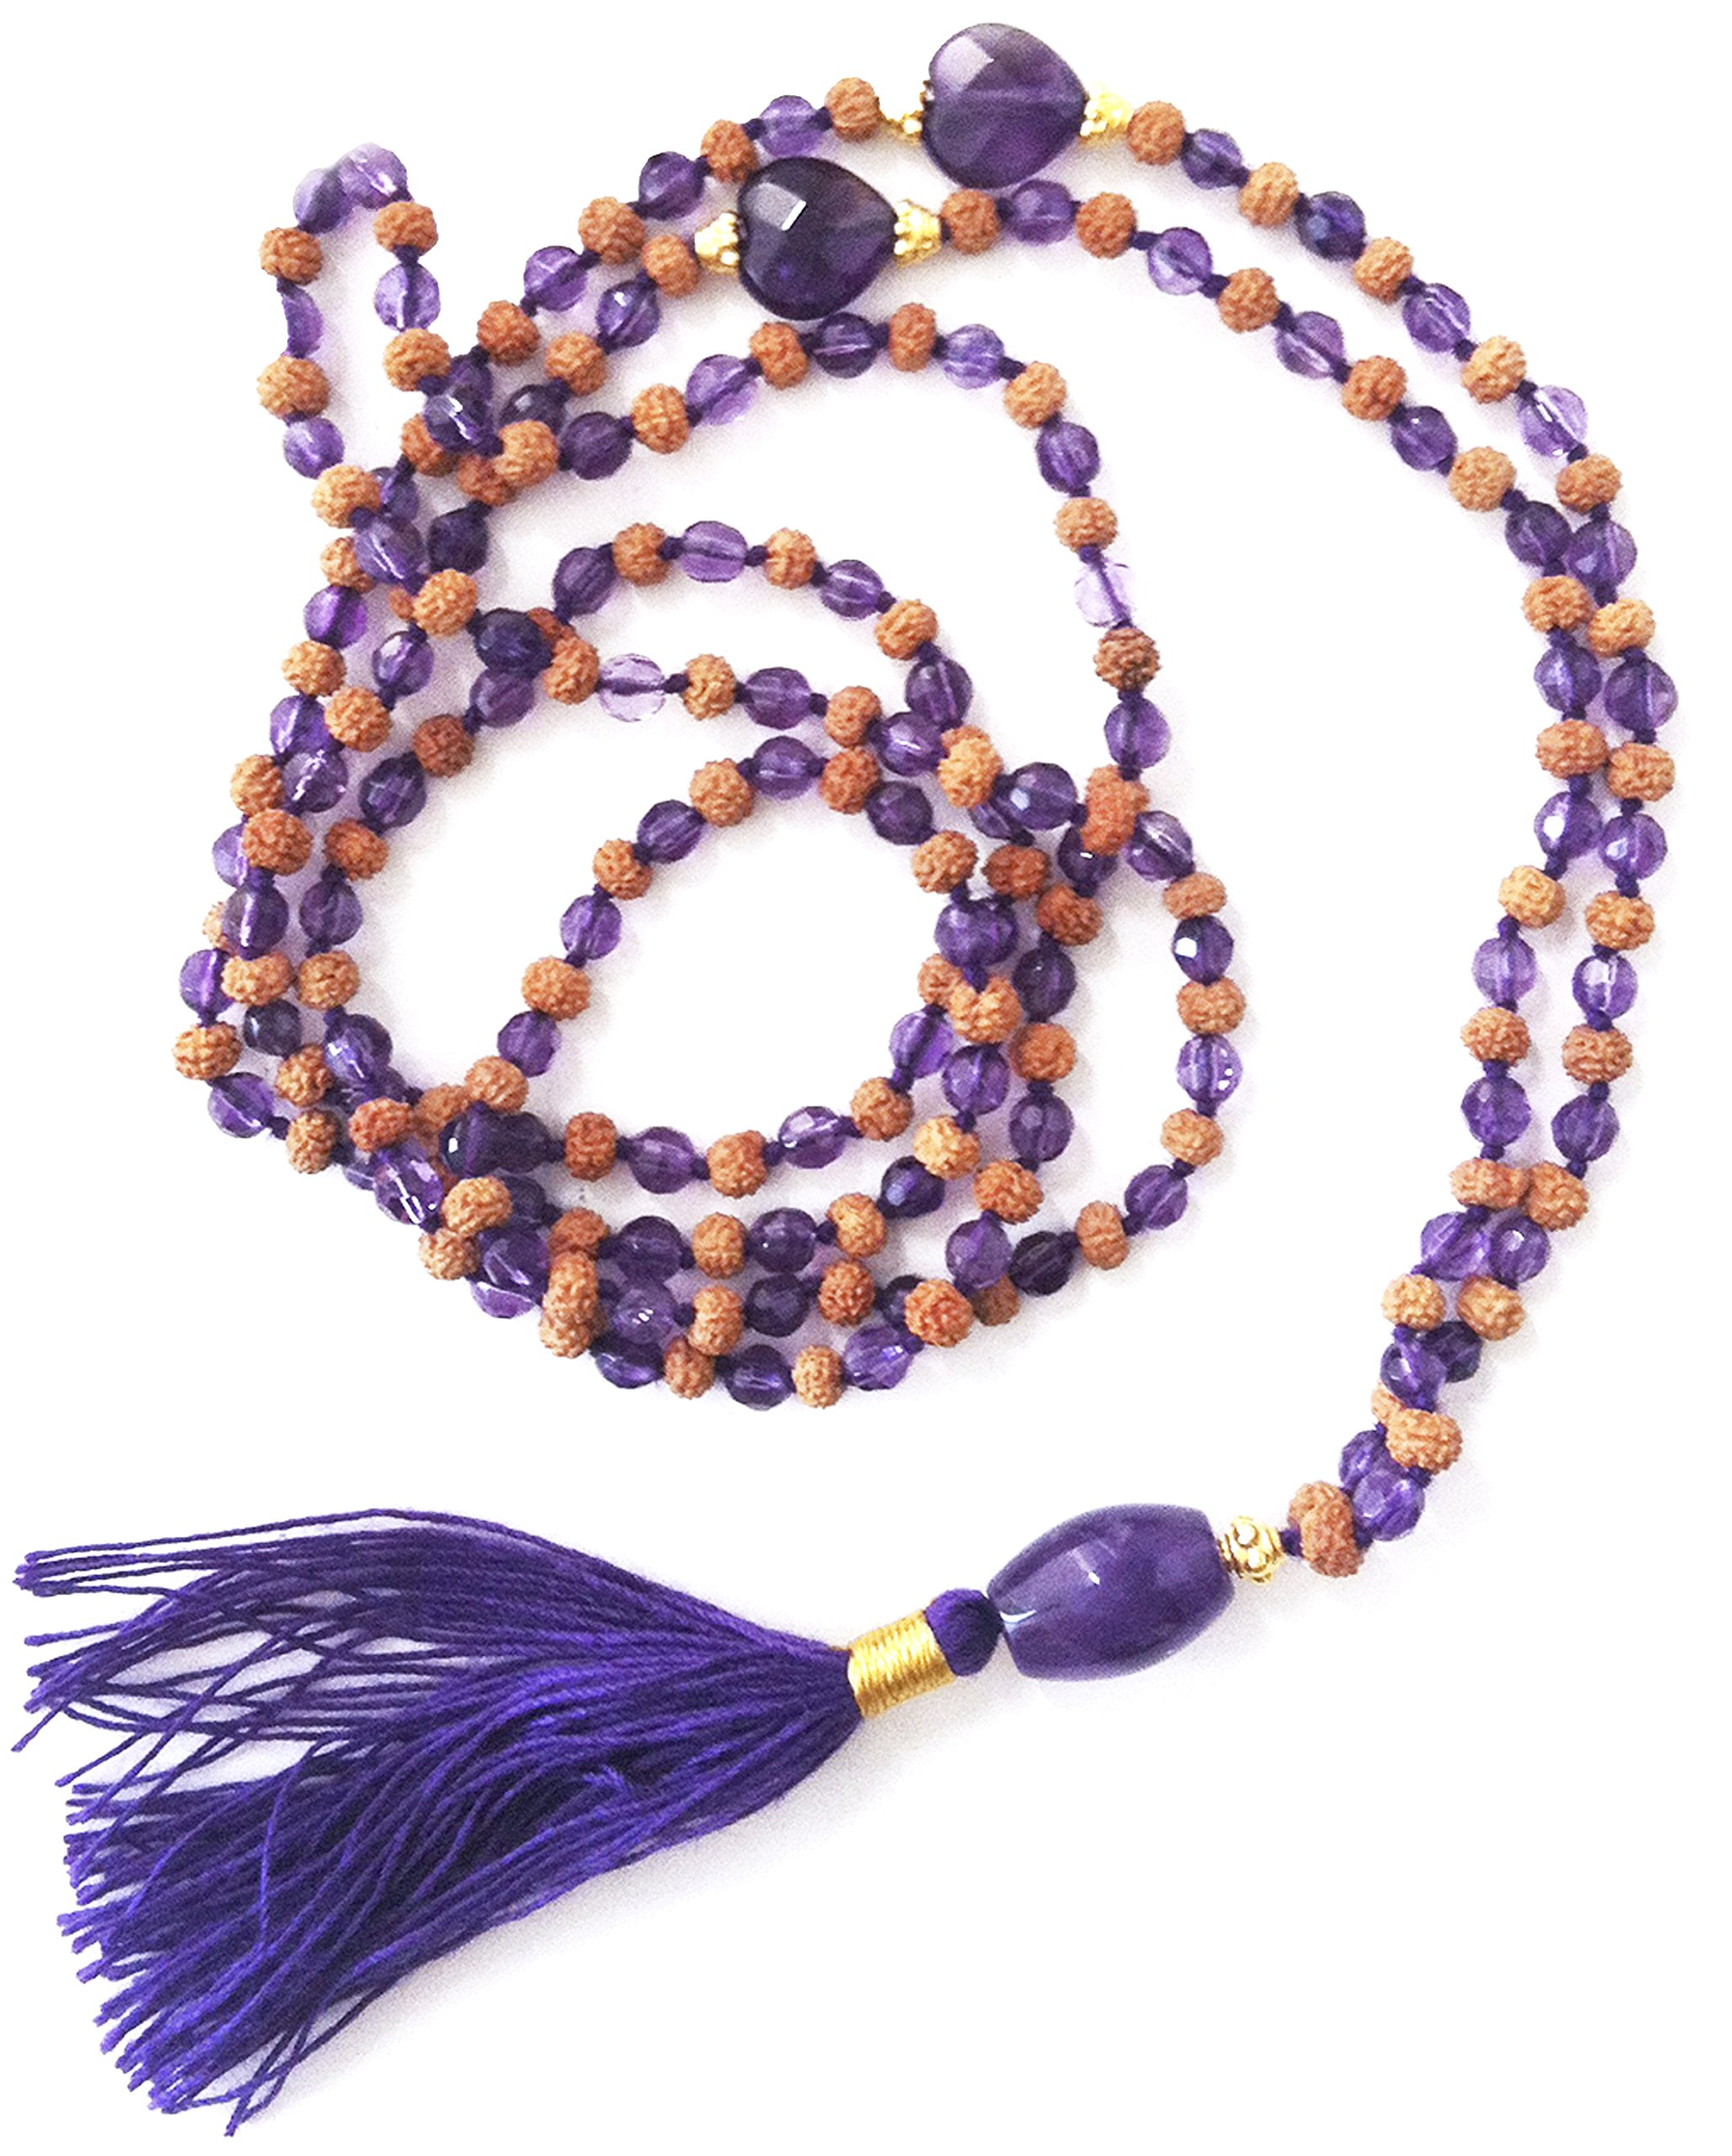 Jai Ho Mala 216 Rudraksha Prayer Beads (22K Gold Plated Silver Caps & Crystal Beads & Pendant AMETHYST)